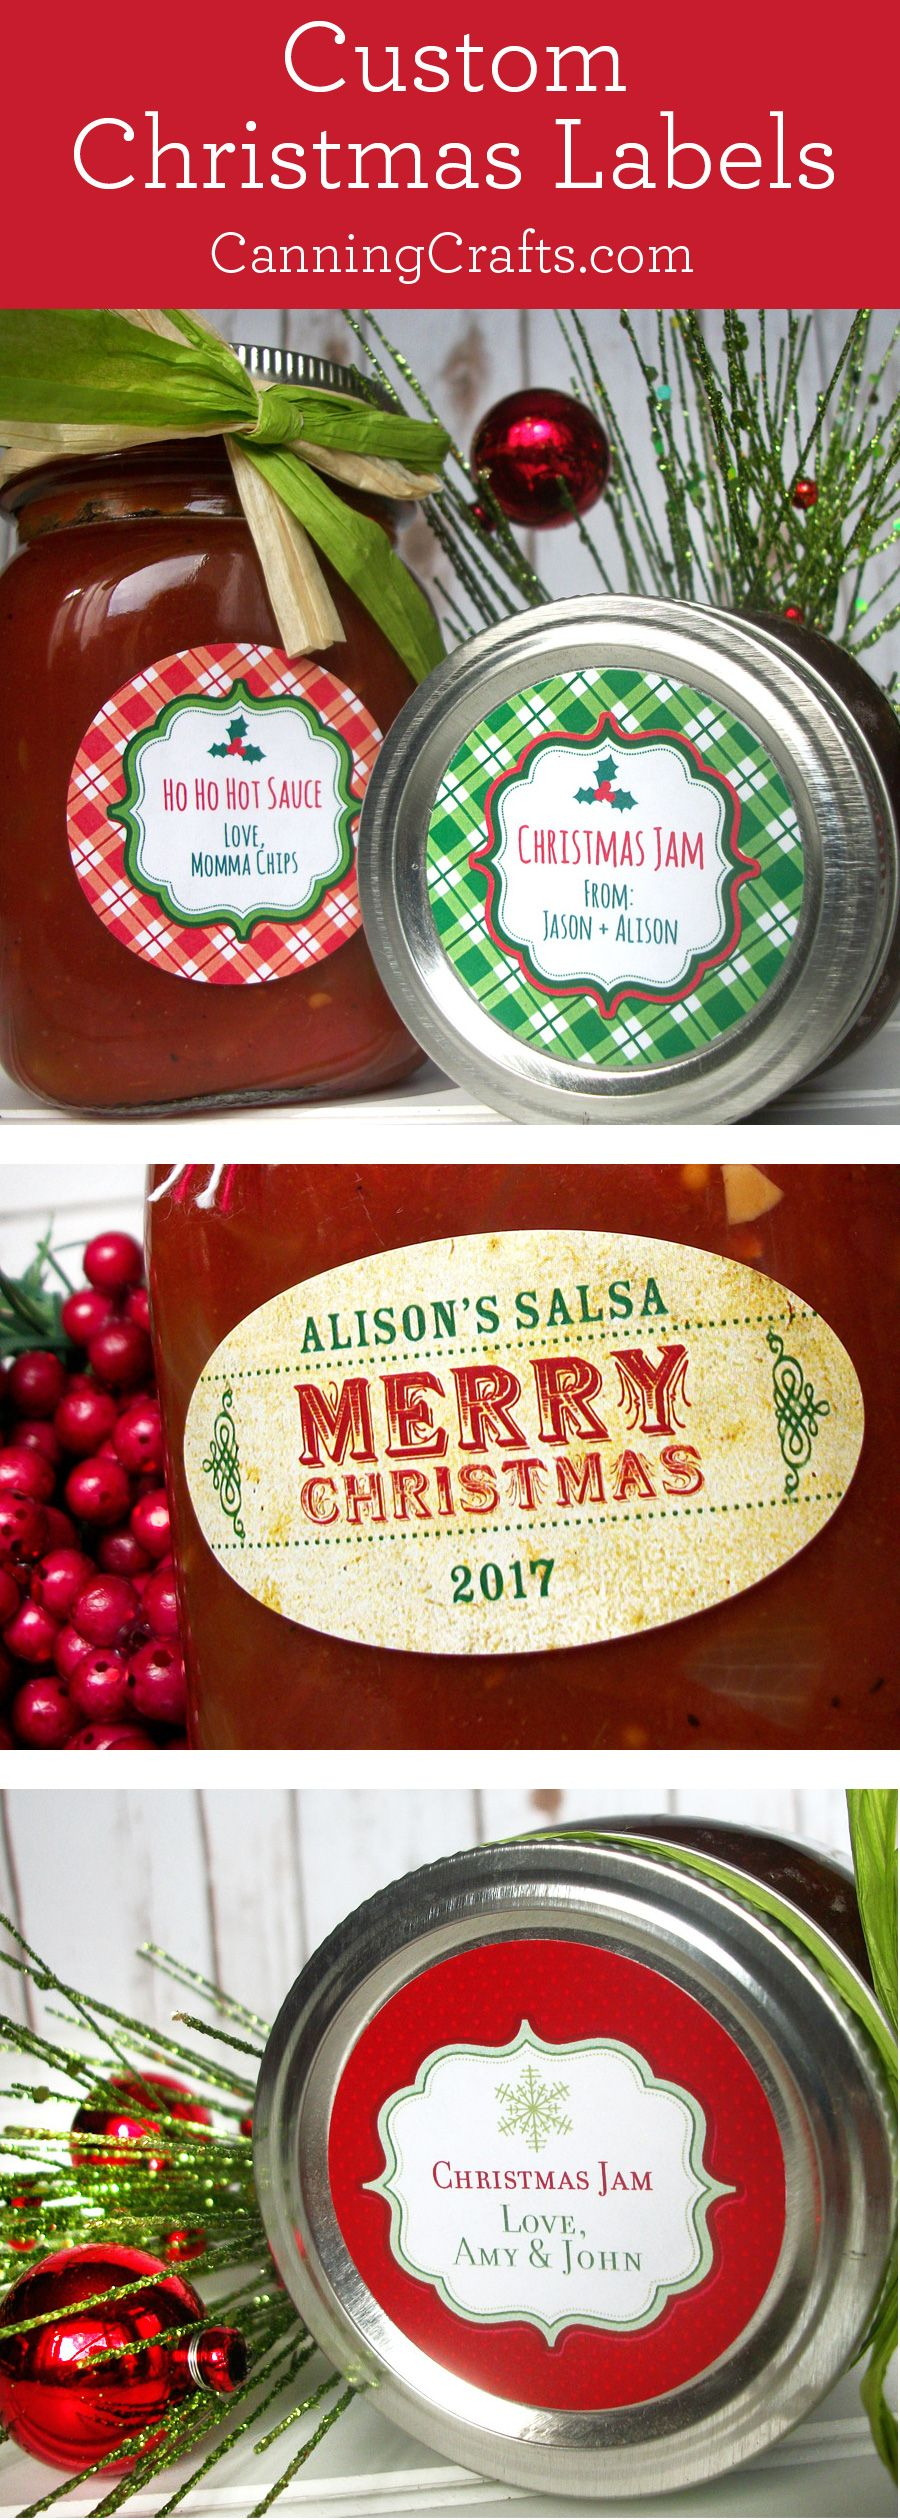 Custom Christmas Canning Jar Labels Stickers For Home Preserved Food In Mason Jars Canningcrafts Com Christmas Canning Labels Canning Jar Labels Jar Food Gifts